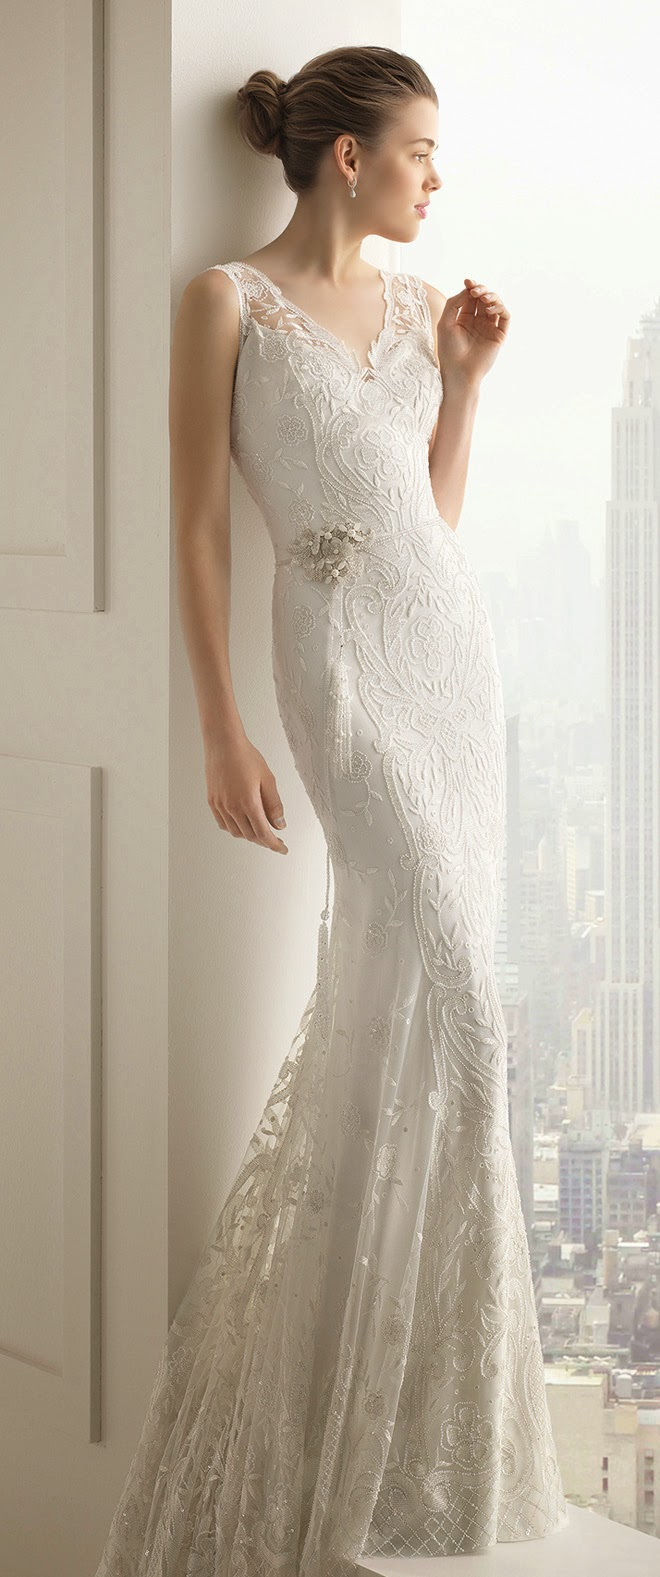 7ad26123 Please contact Rosa Clara for authorize retailers and pricing information.  For every bride there is a perfect dress .